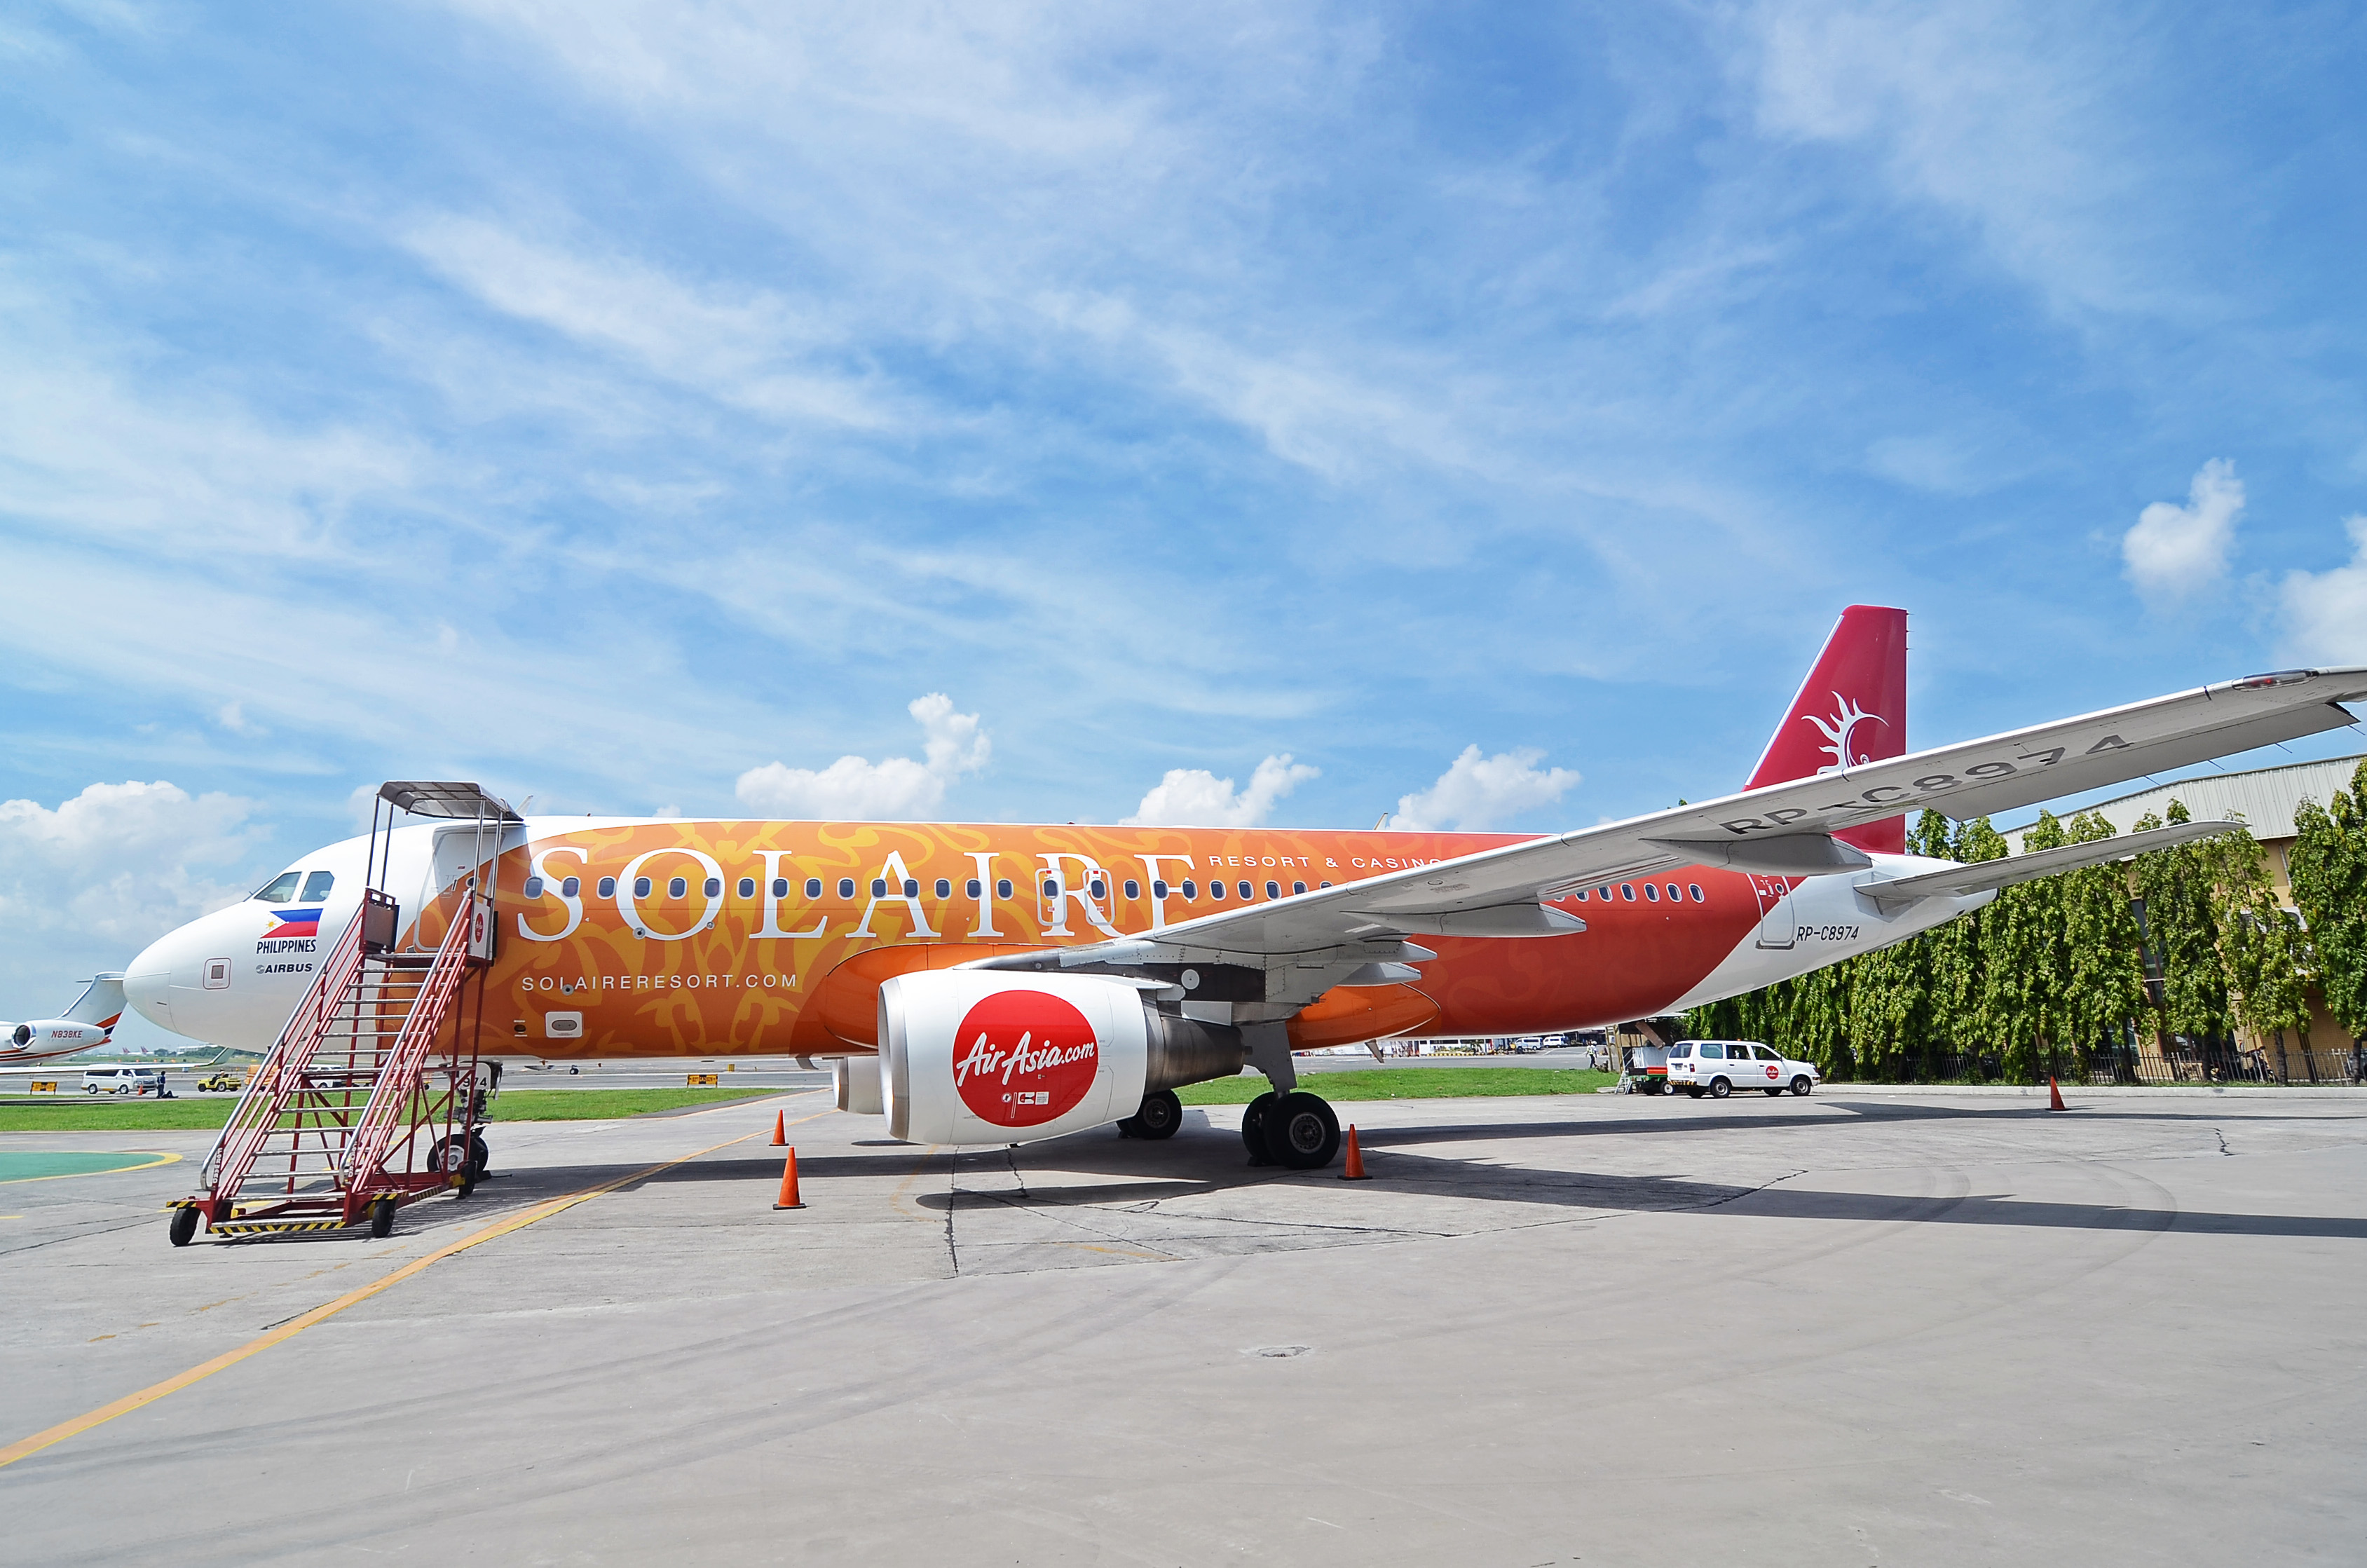 Dec 03,  · About AirAsia - Indonesia AirAsia Founded in as Awair, Indonesia AirAsia (QZ) is a budget airline headquartered in Tangerang. Jakarta's Soekarno-Hatta International Airport (CGK), Surabaya's Juanda International Airport (JIA) and Medan's /5(2K).